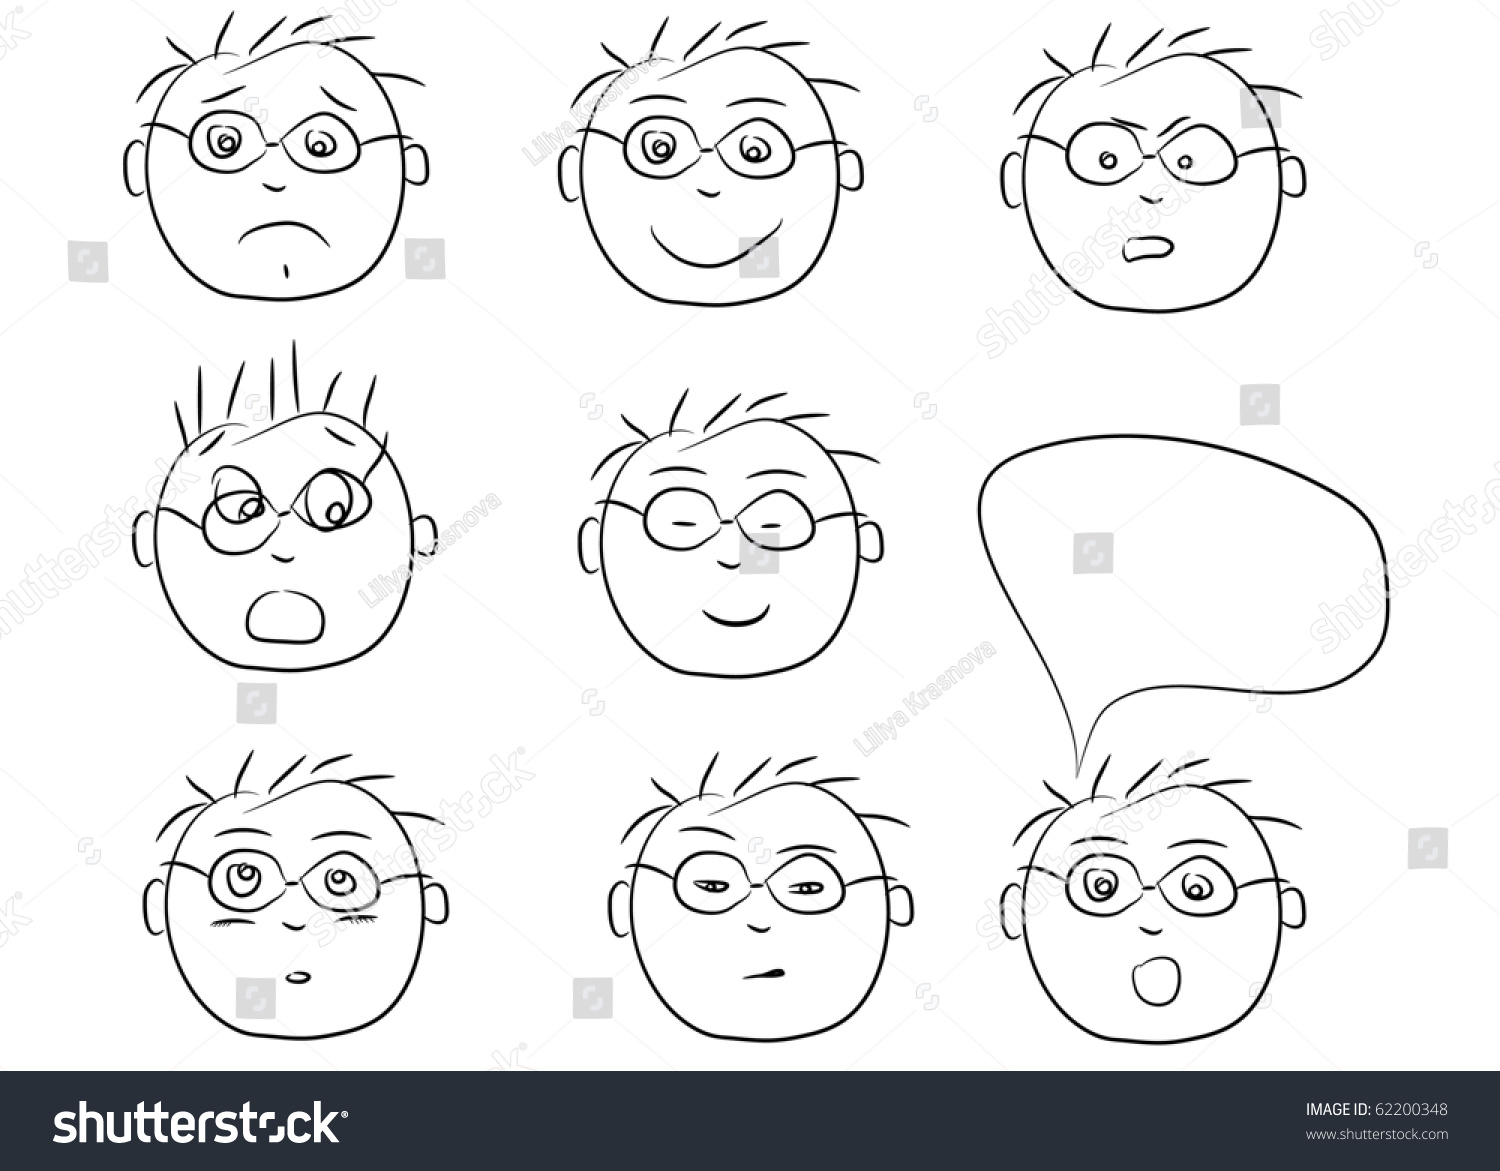 Crying Face Clip Art Black And White